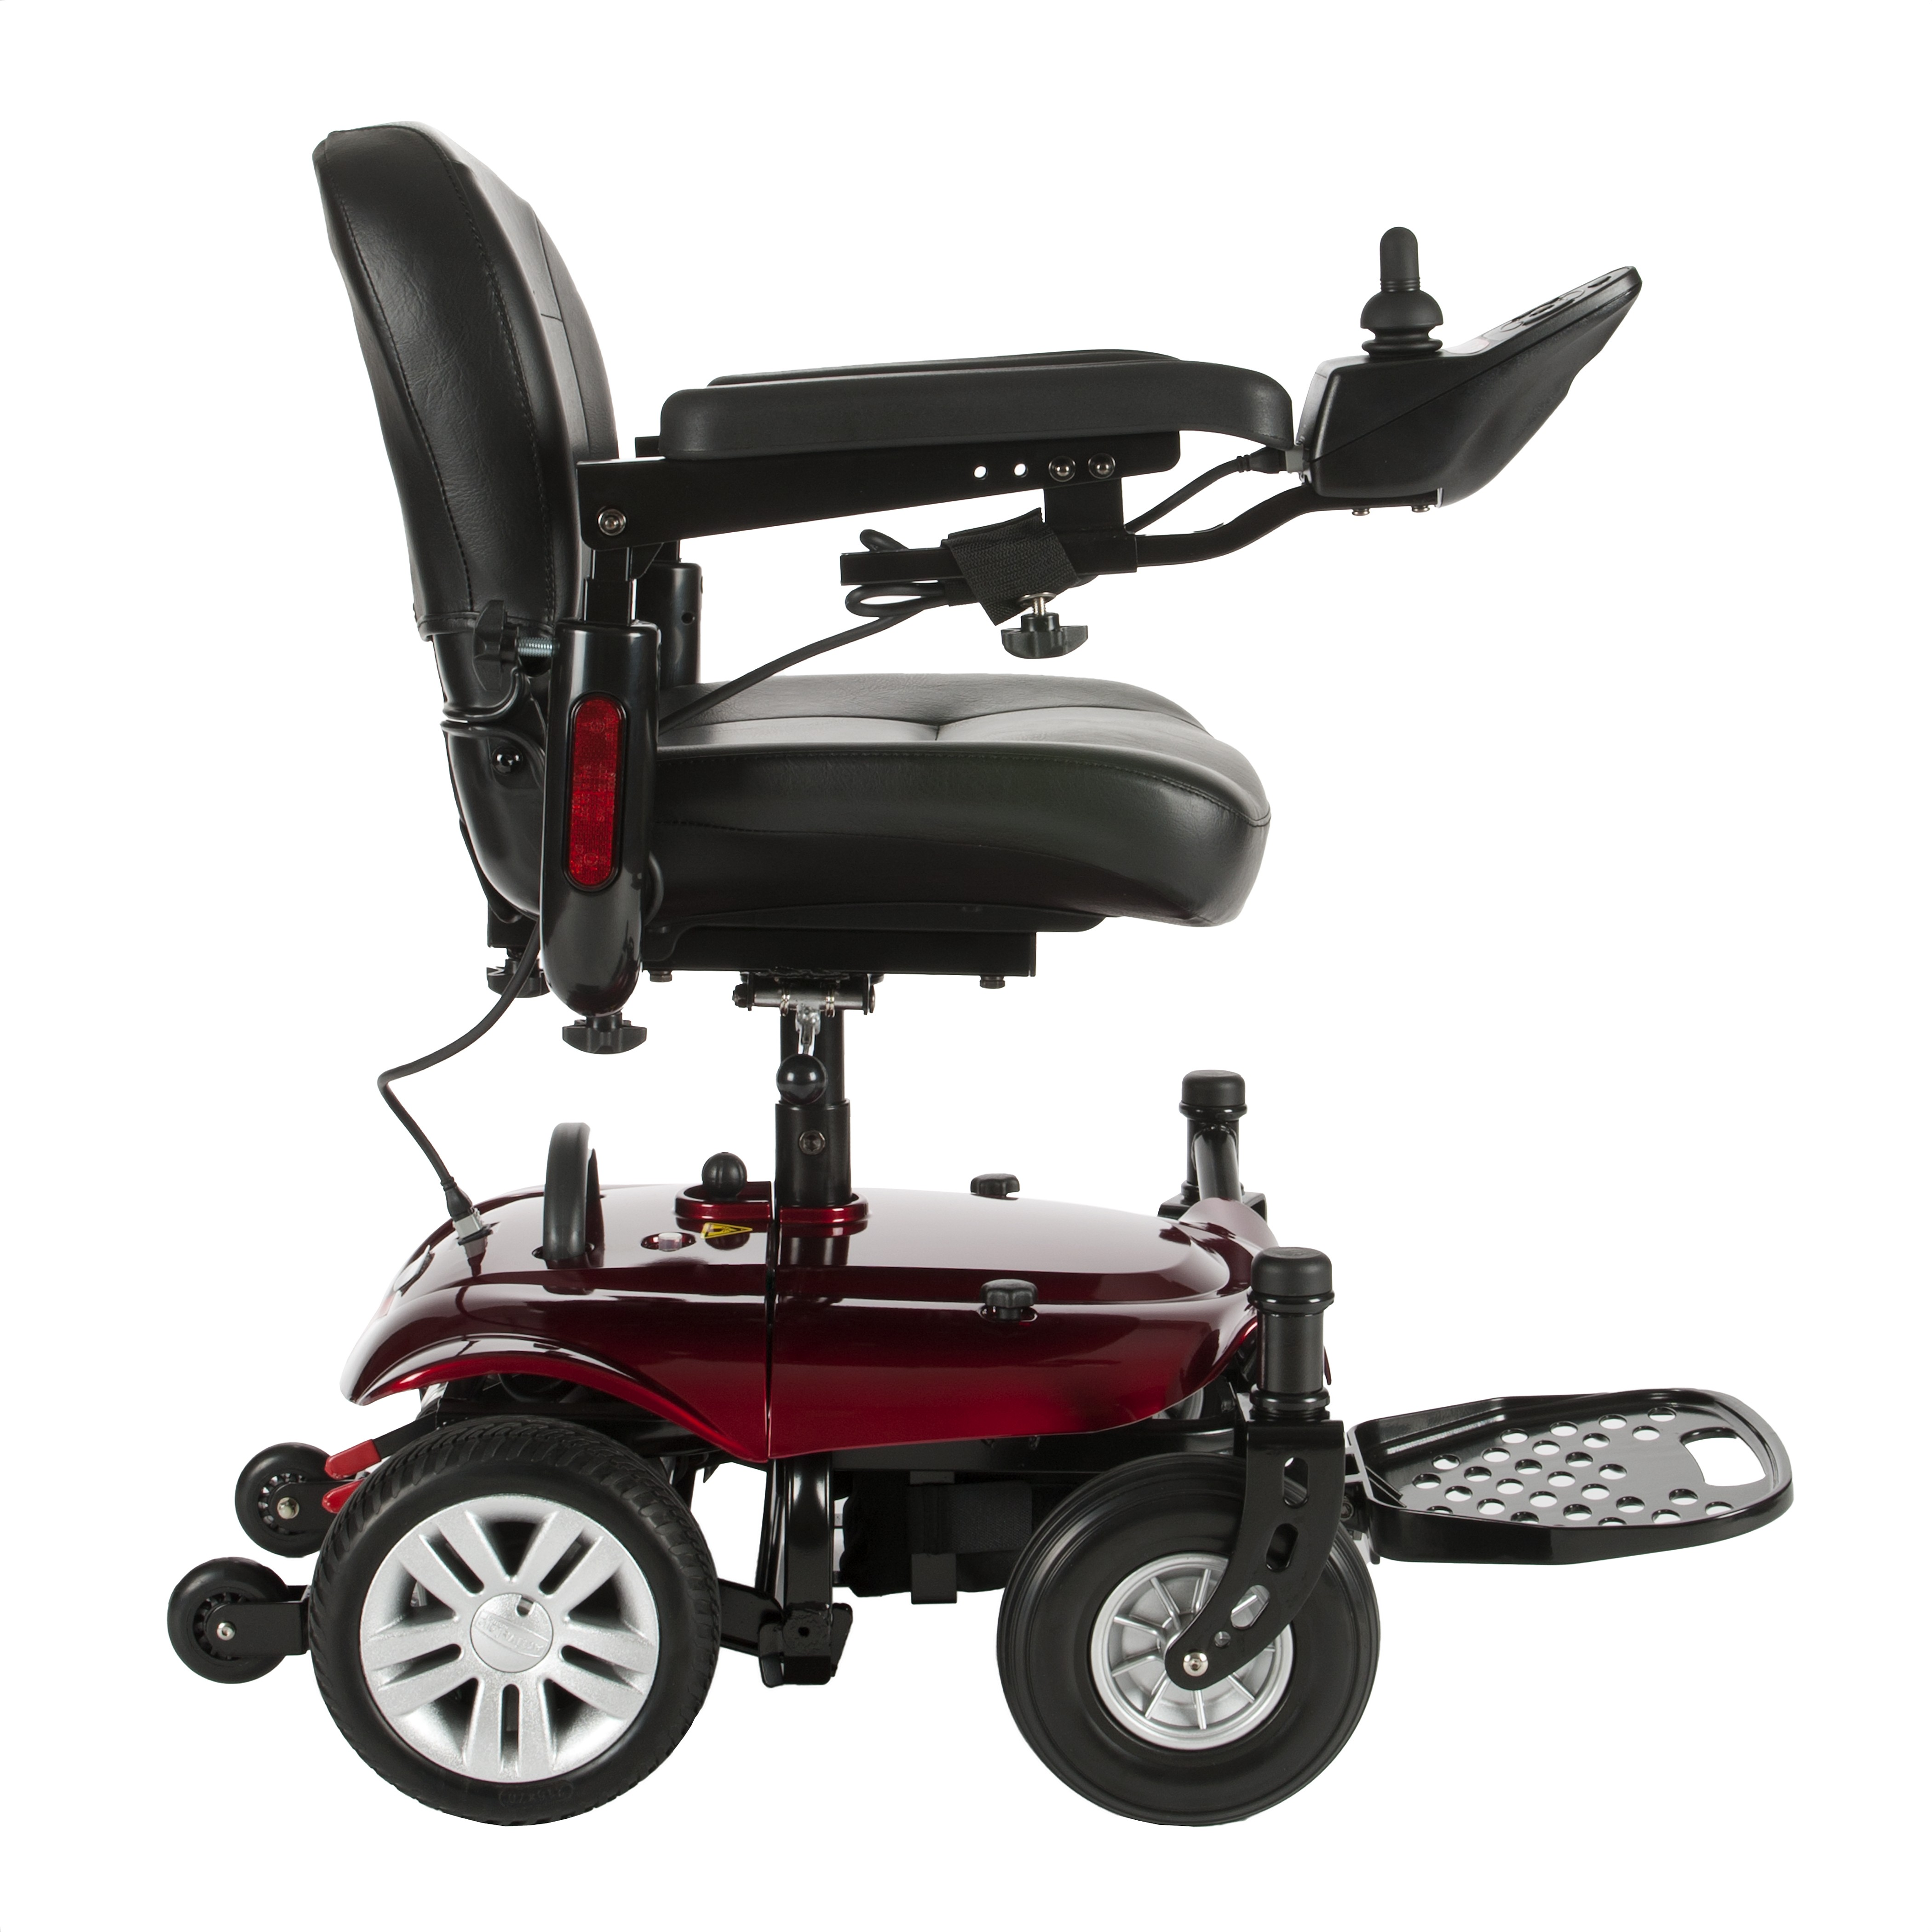 Cobalt X23 Power Chair - COBALTX23RD16FS-powerchairCobaltx23red_insetA_1.jpg